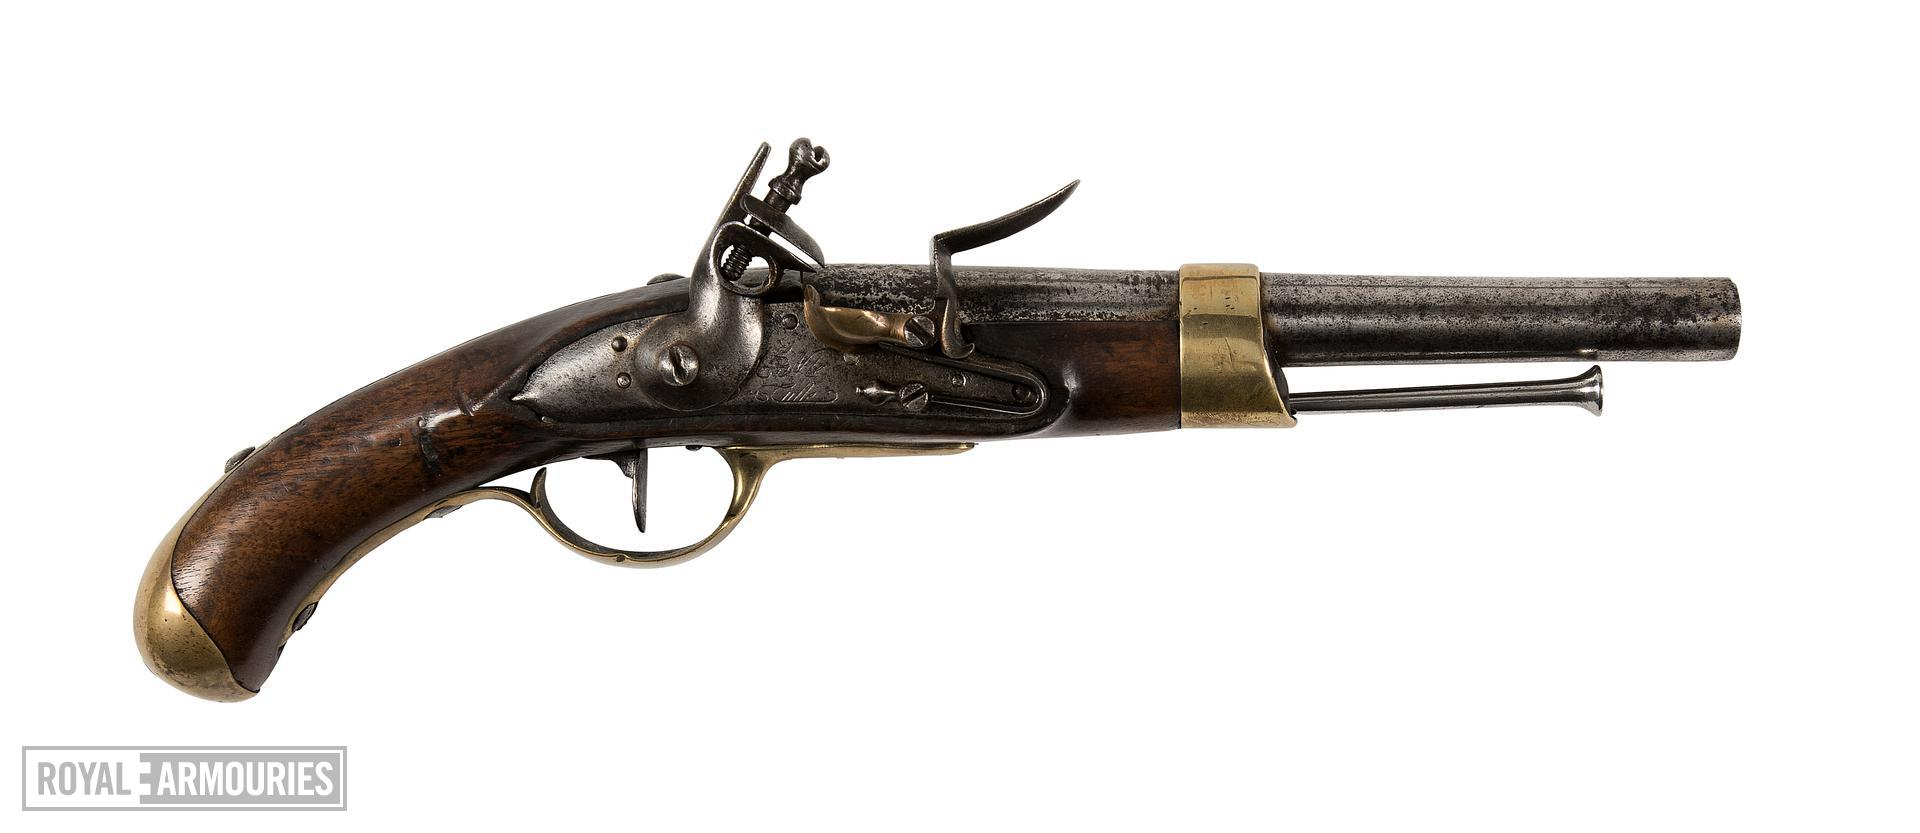 Flintlock muzzle-loading pistol - Model 1786 Marine